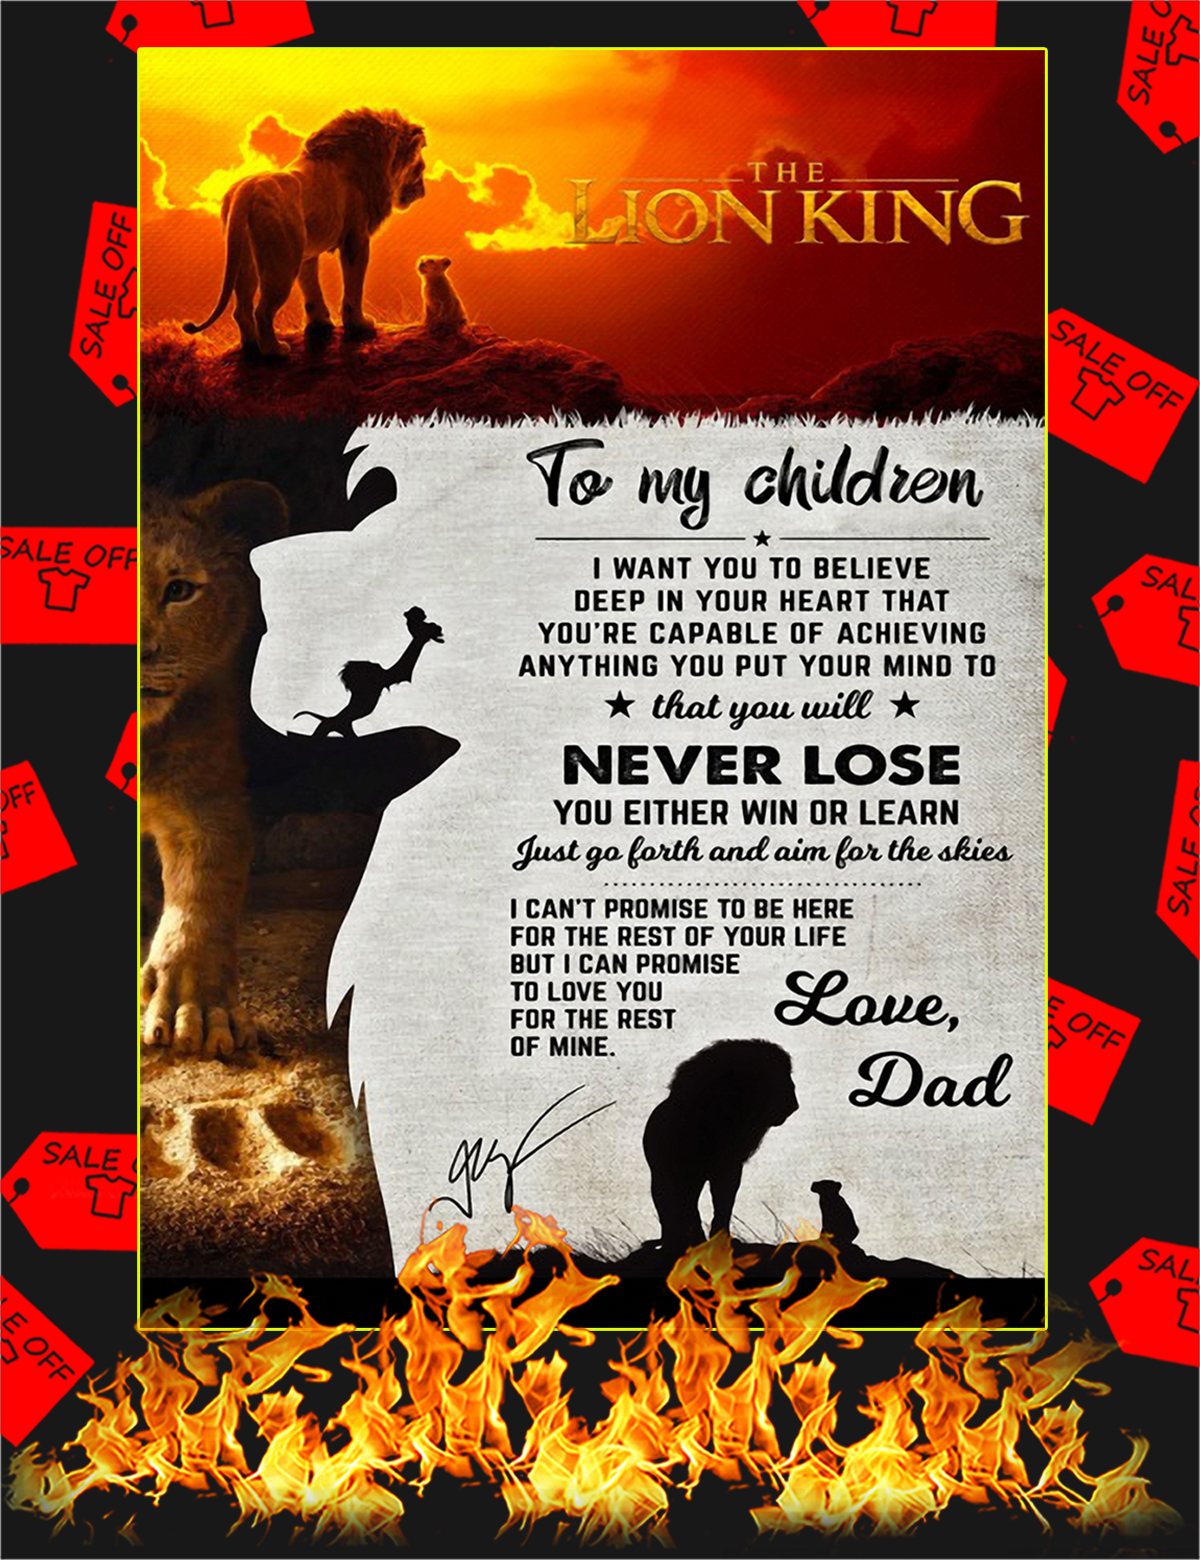 The lion king to my children love dad poster - A1